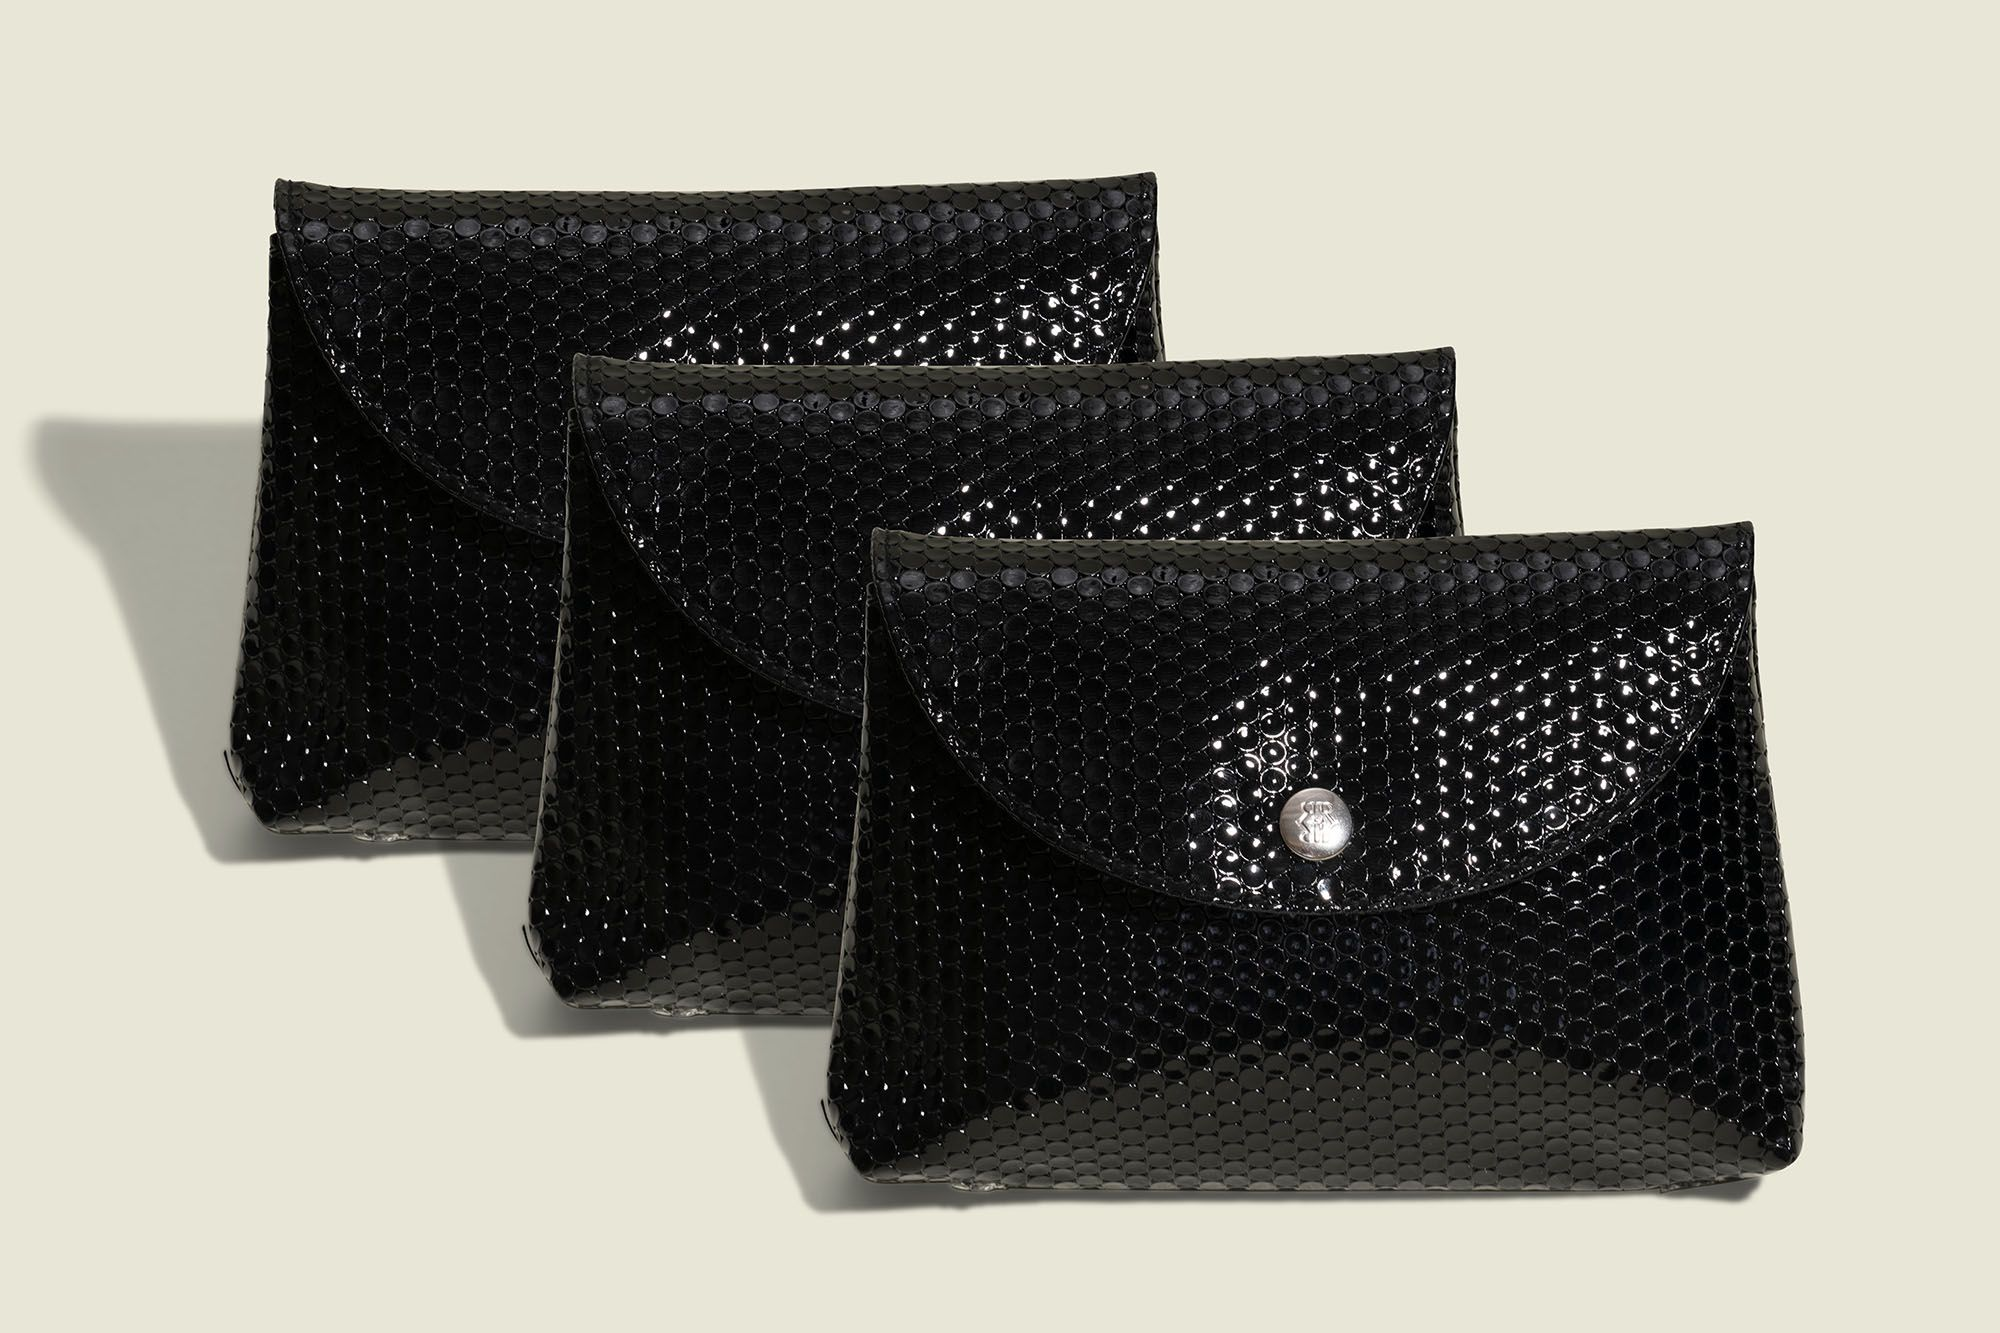 Standing black pouches